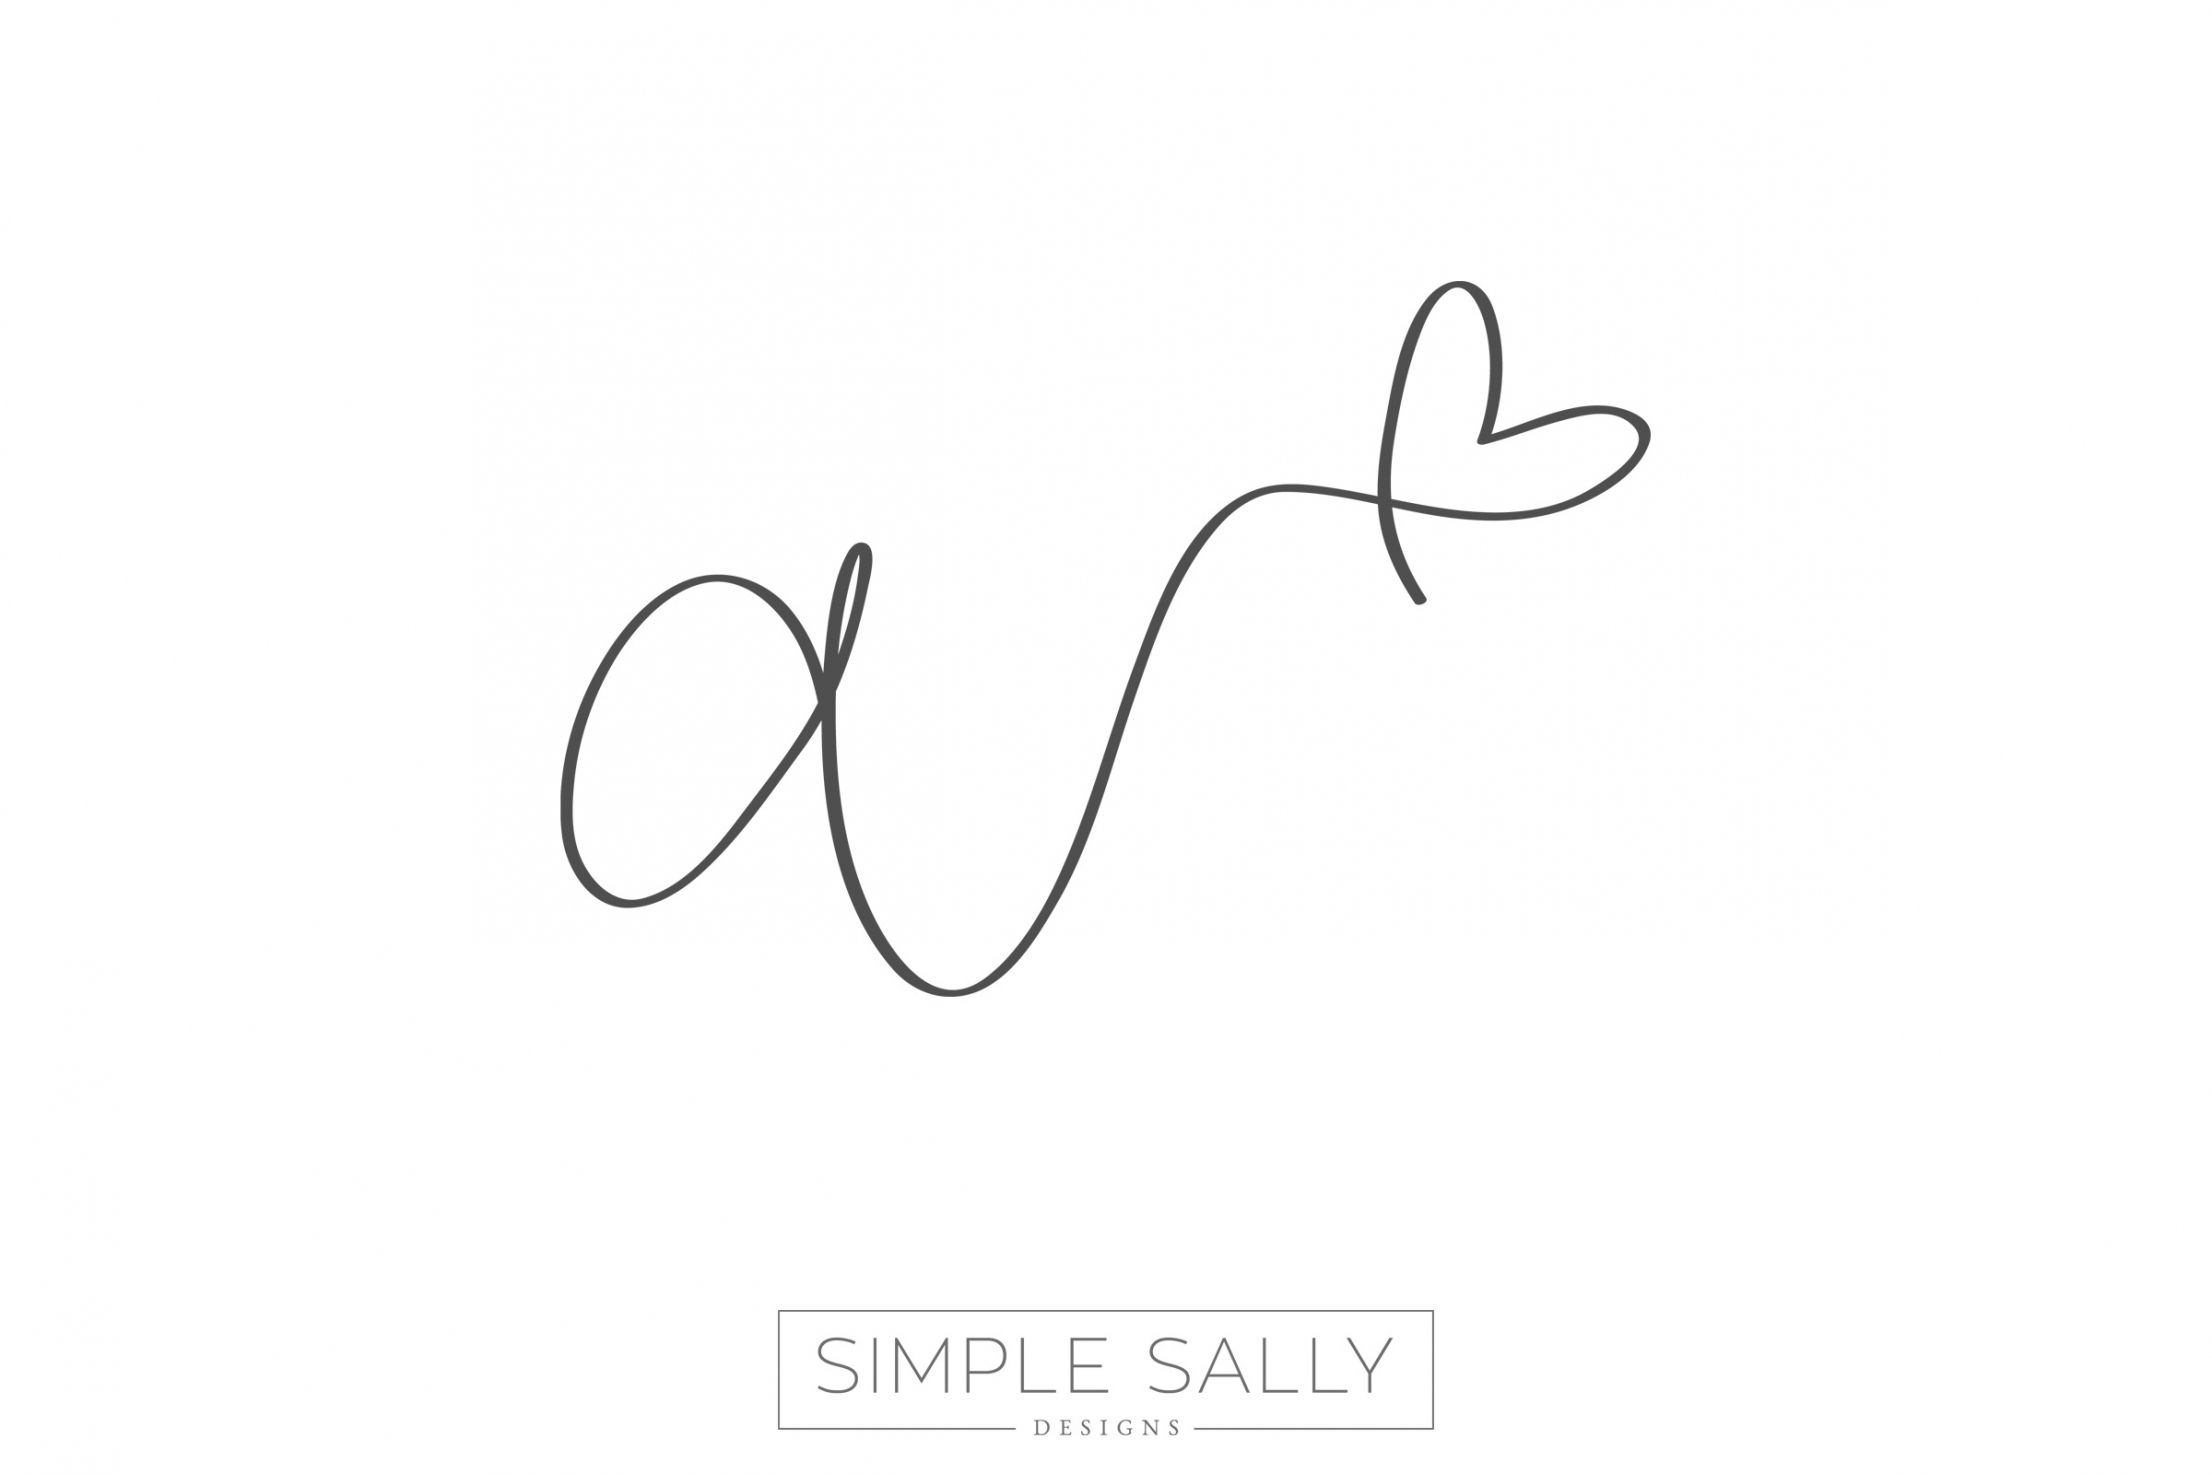 Handwritten+tattoo+design+by+Simple+Sally+